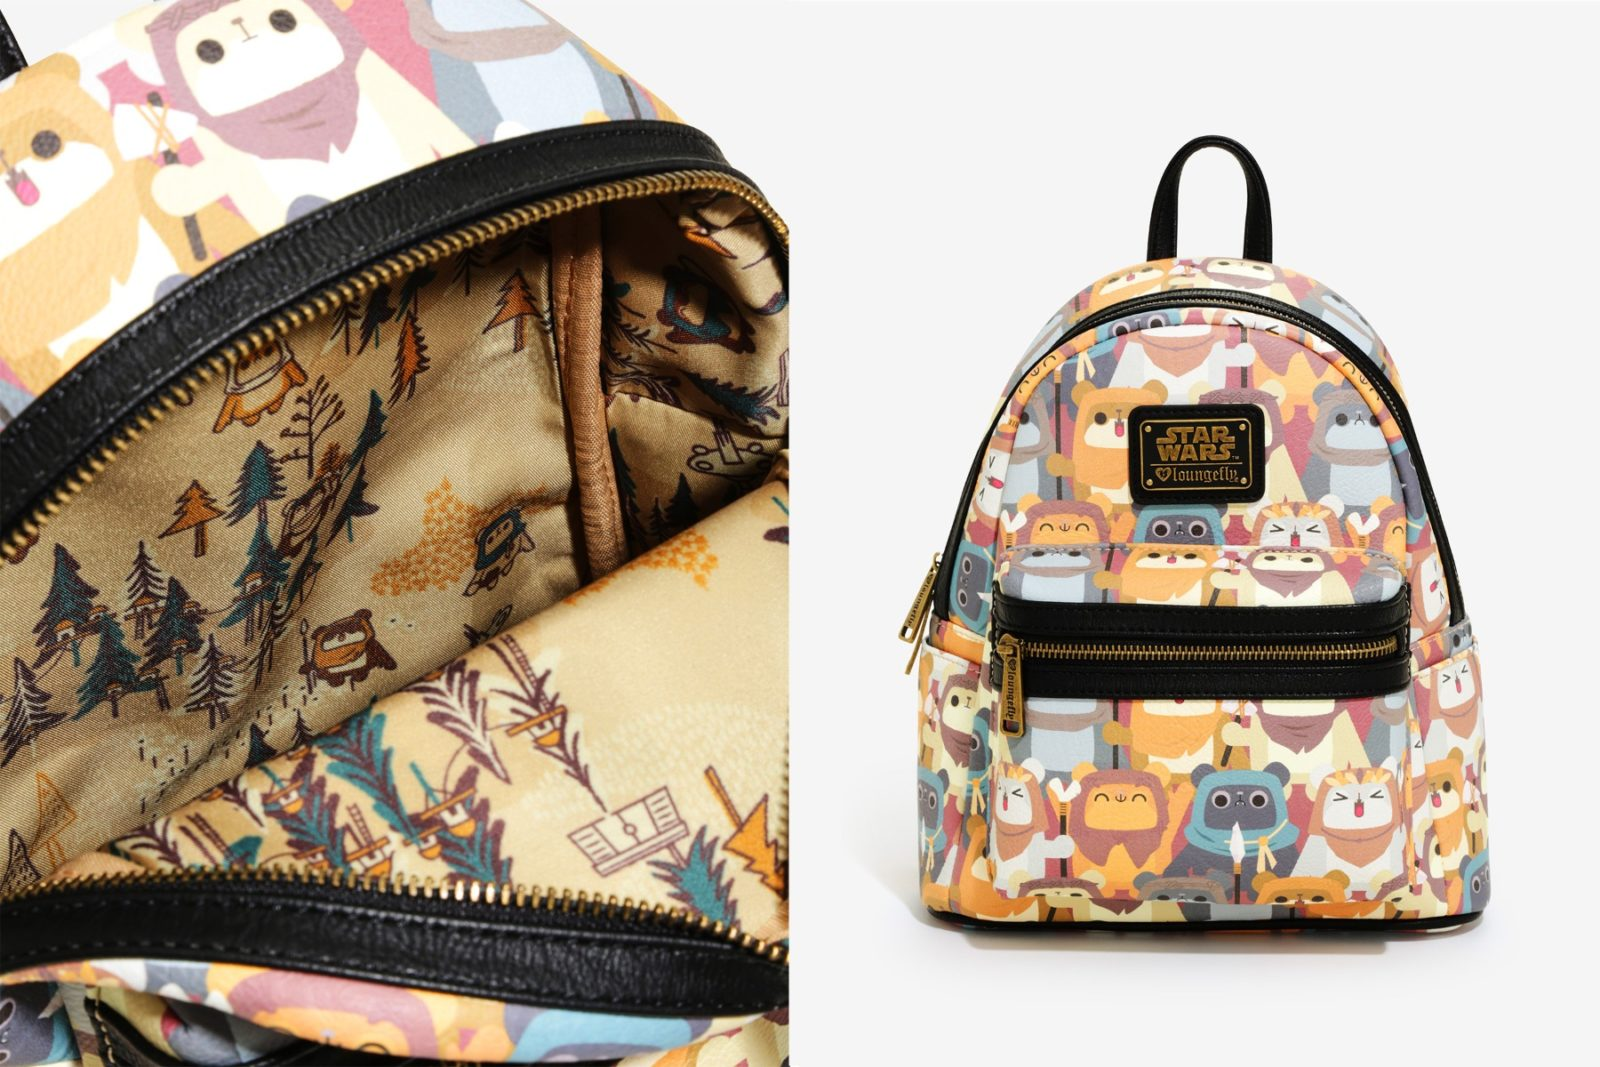 Loungefly Ewok Mini Backpack at Box Lunch